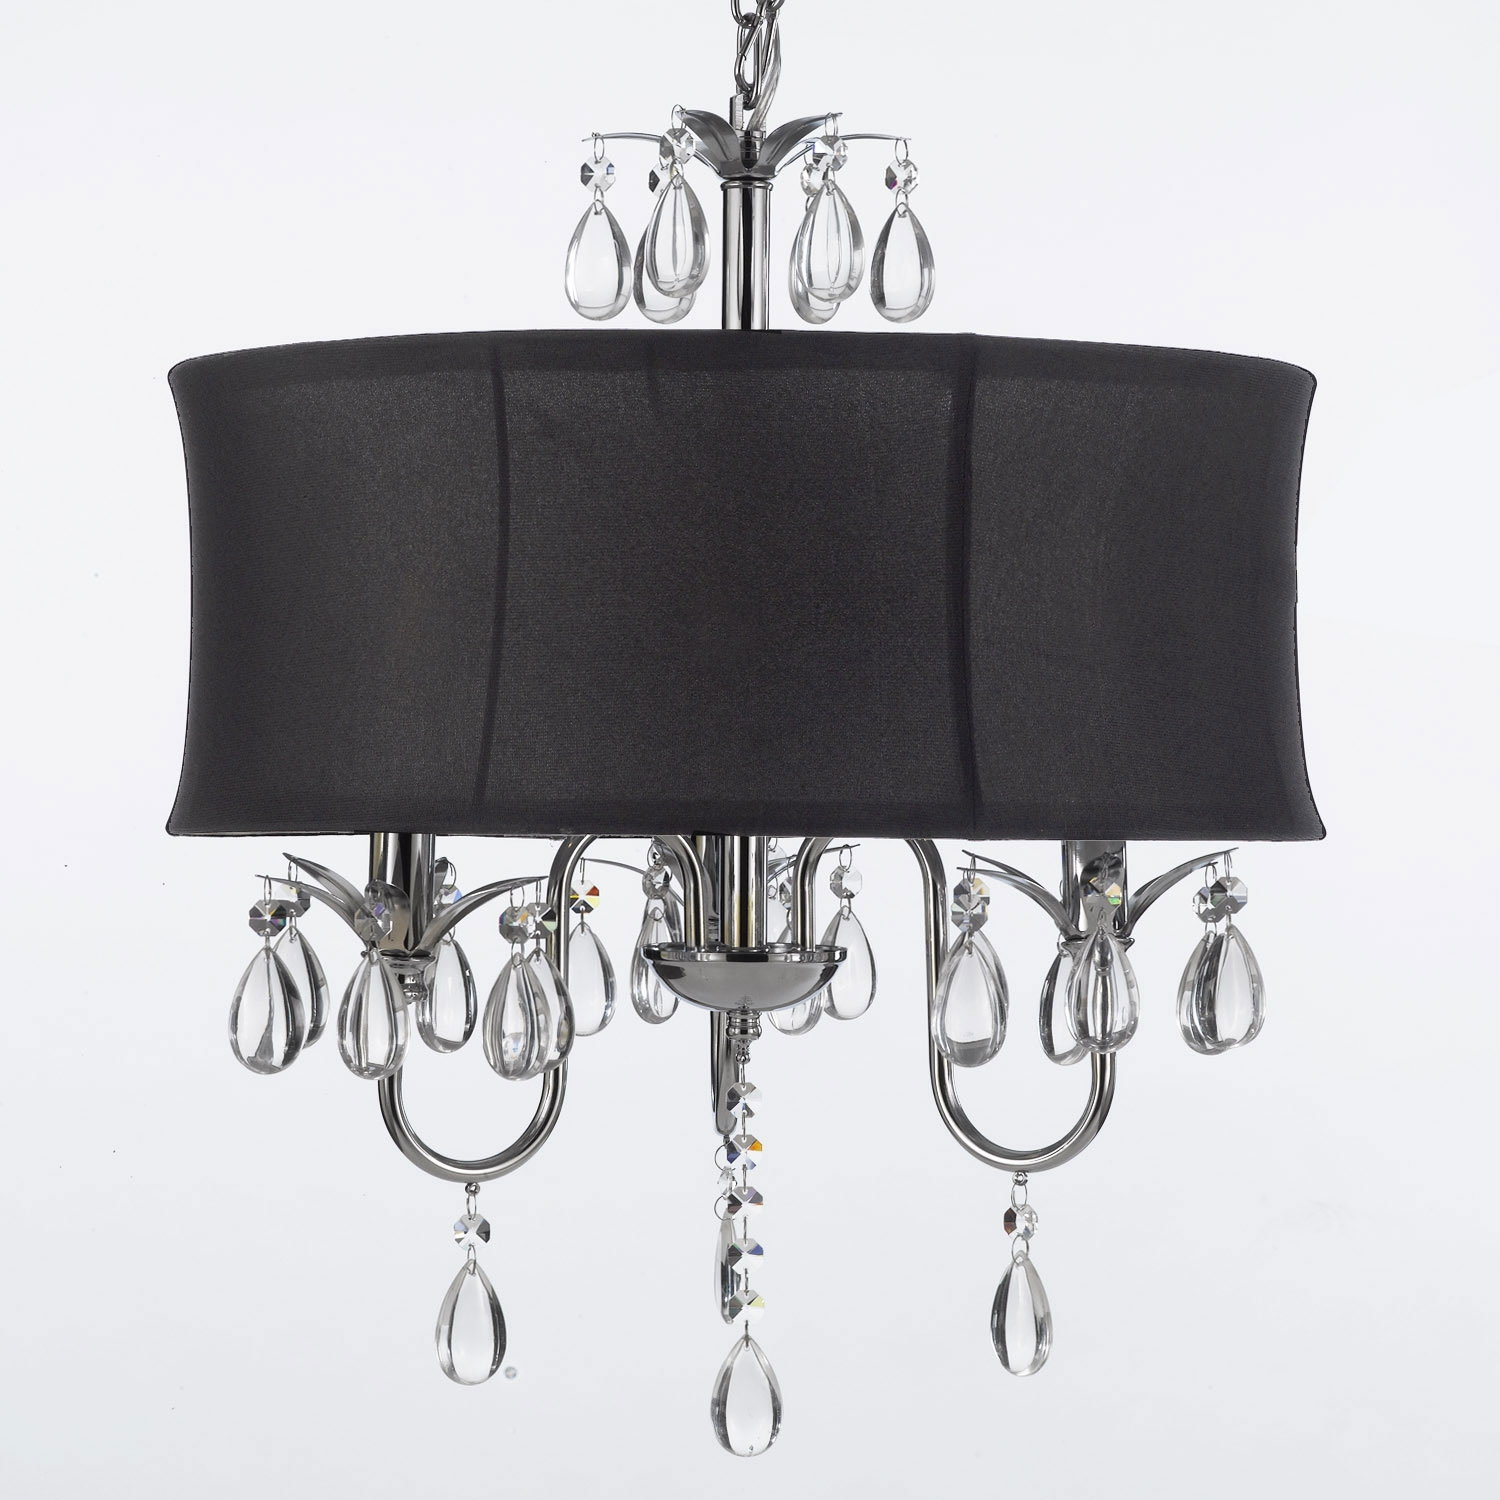 G7 Black8343 Chandeliers With Shades Crystal Chandelier With Pertaining To Black Contemporary Chandelier (View 12 of 15)